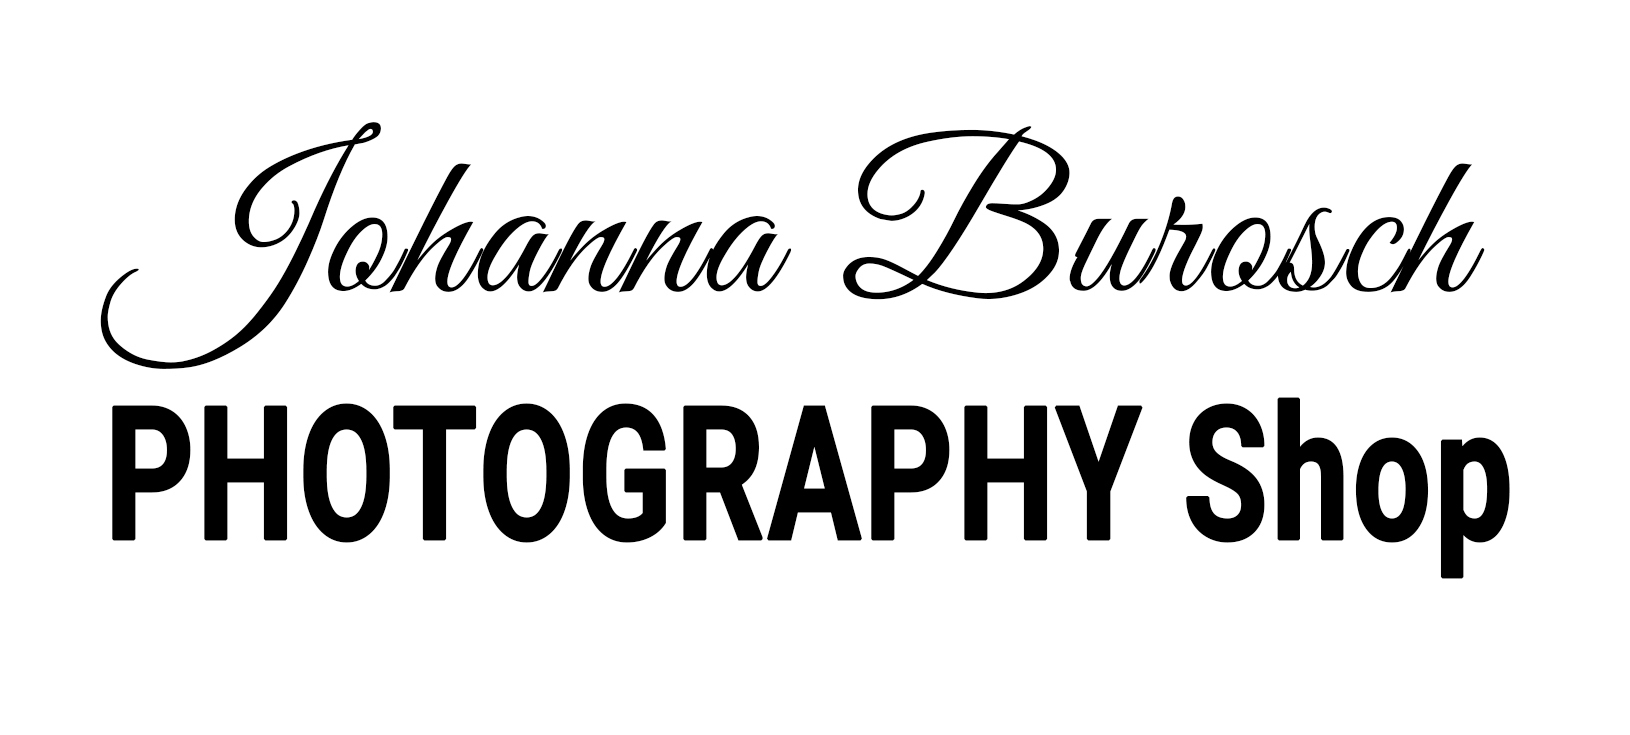 Johanna Burosch PHOTOGRAPHY Shop